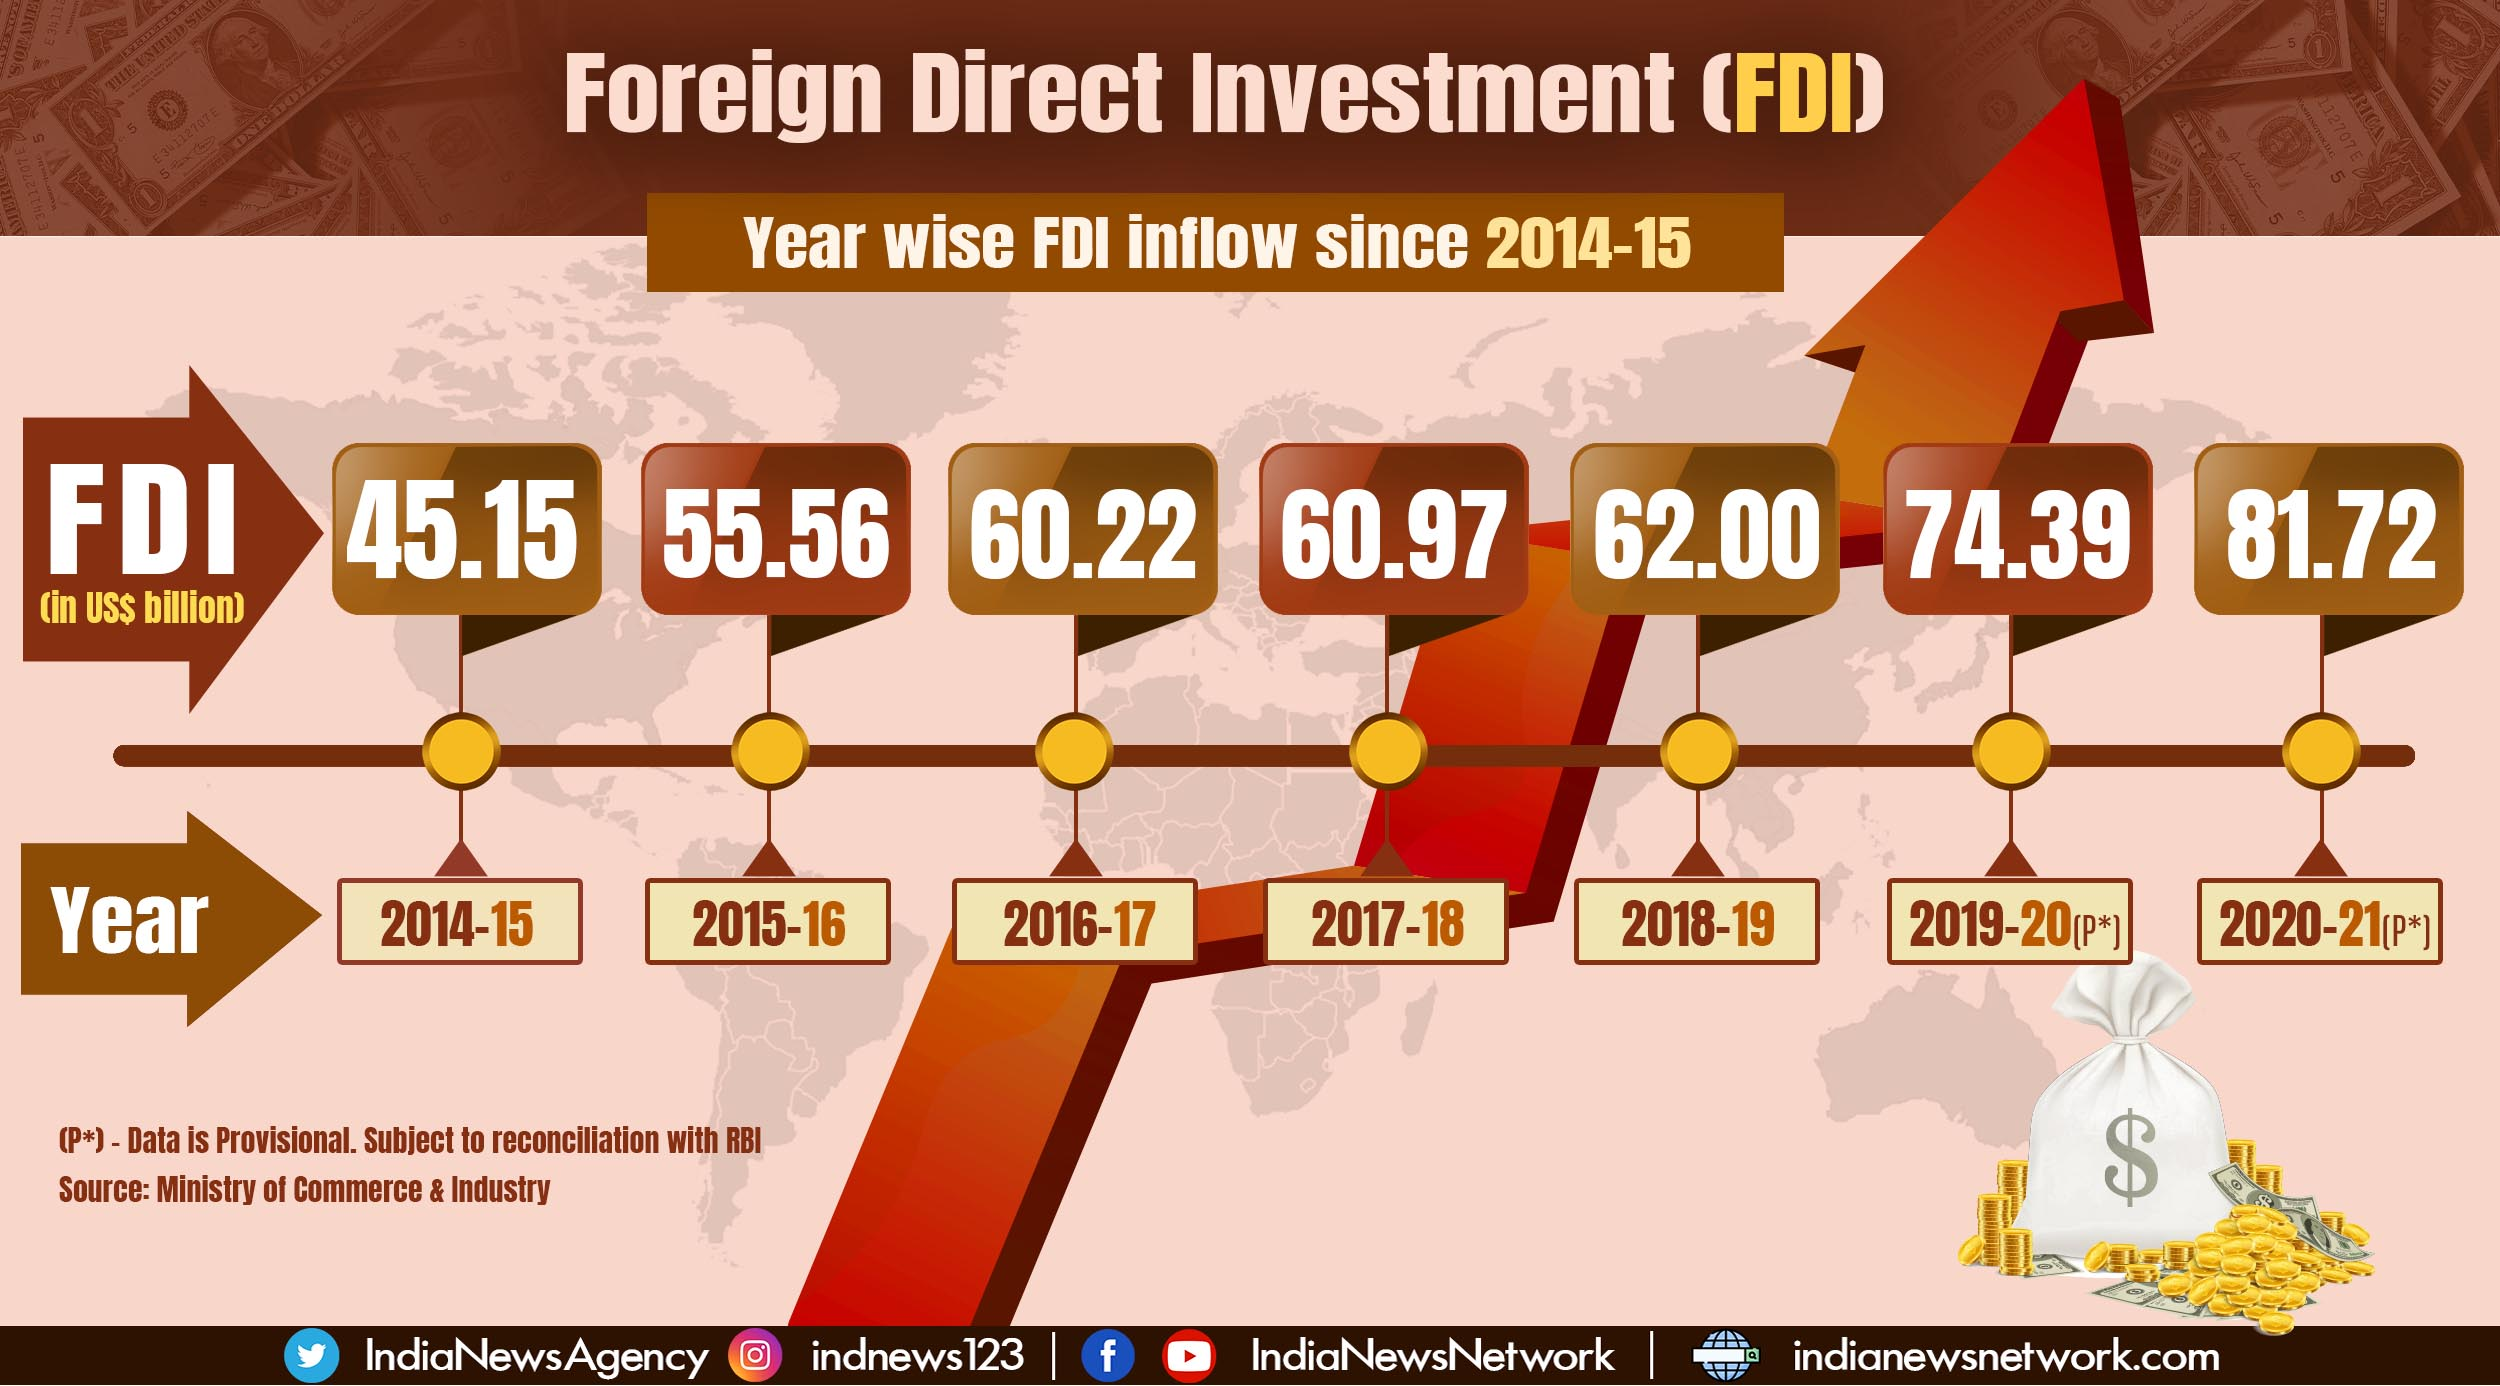 India has received FDI inflow worth US$ 440.01 billion in last 7 years